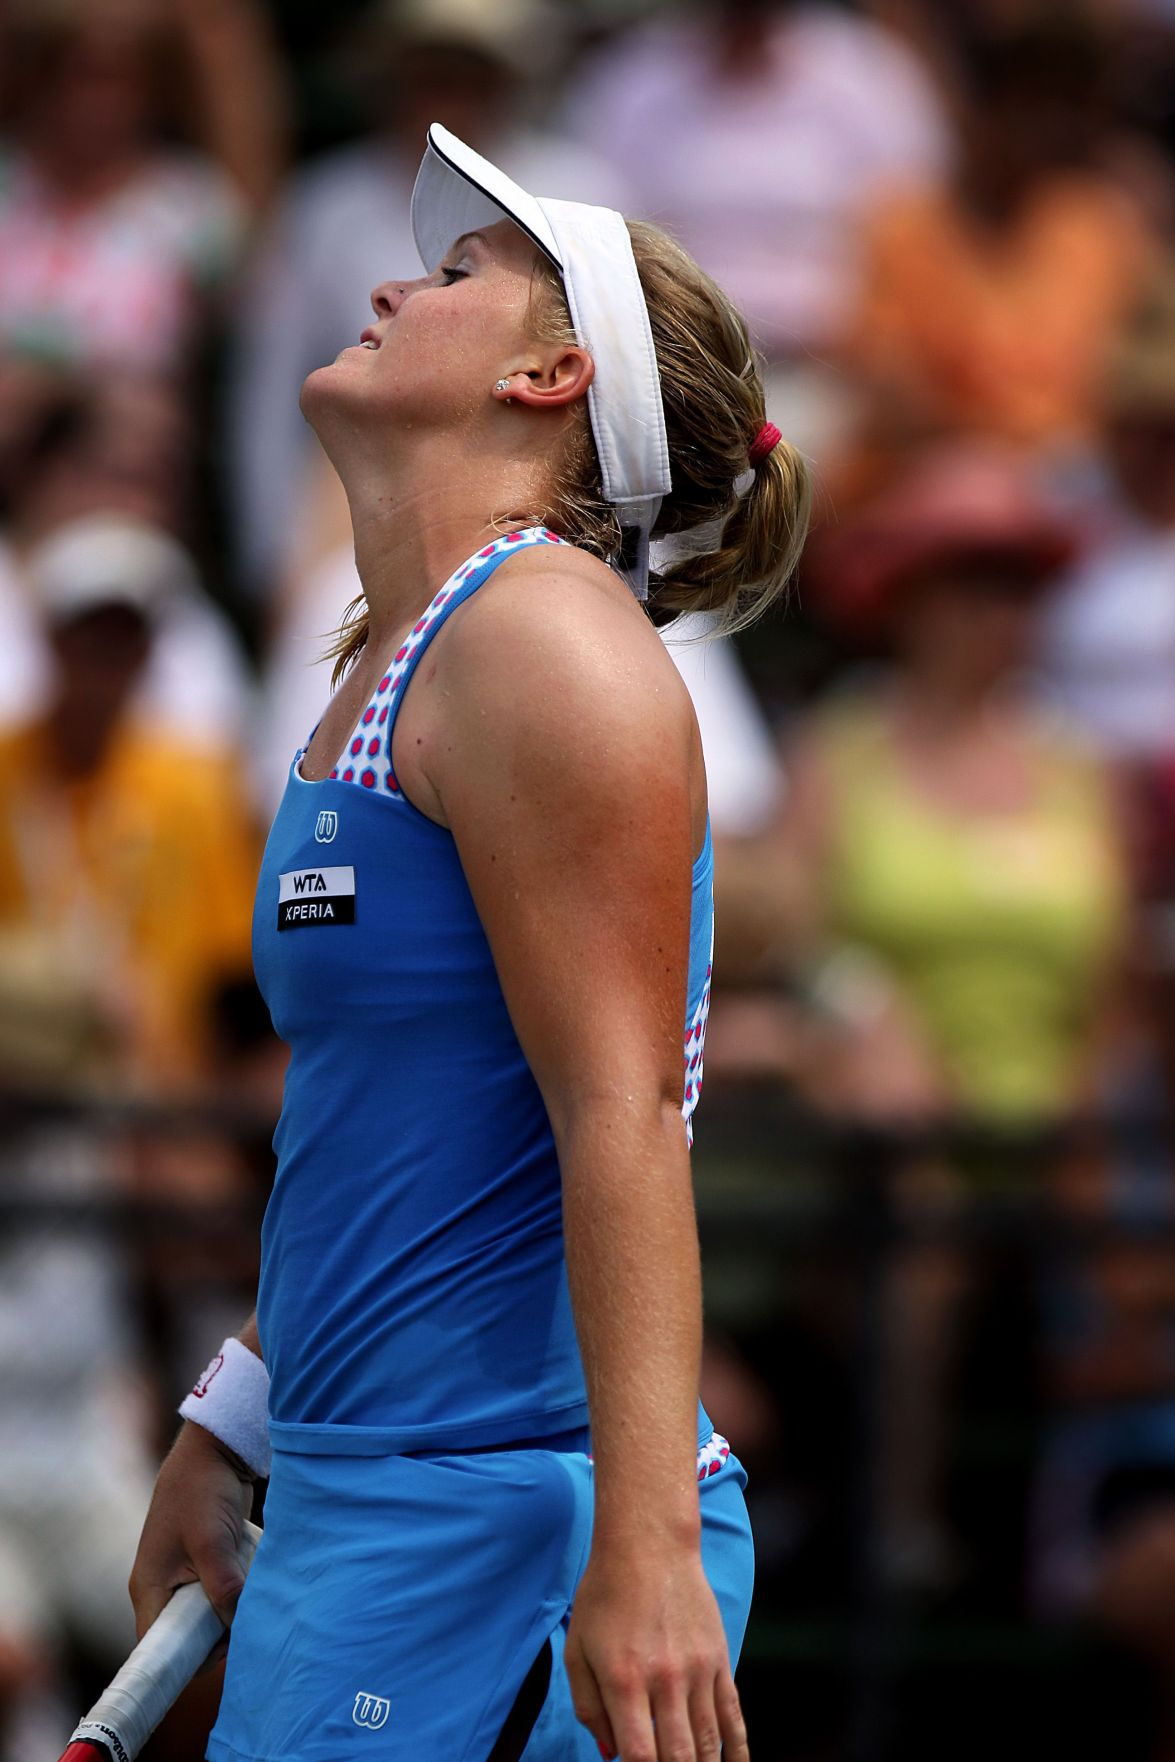 American Oudin loses at Family Circle Cup